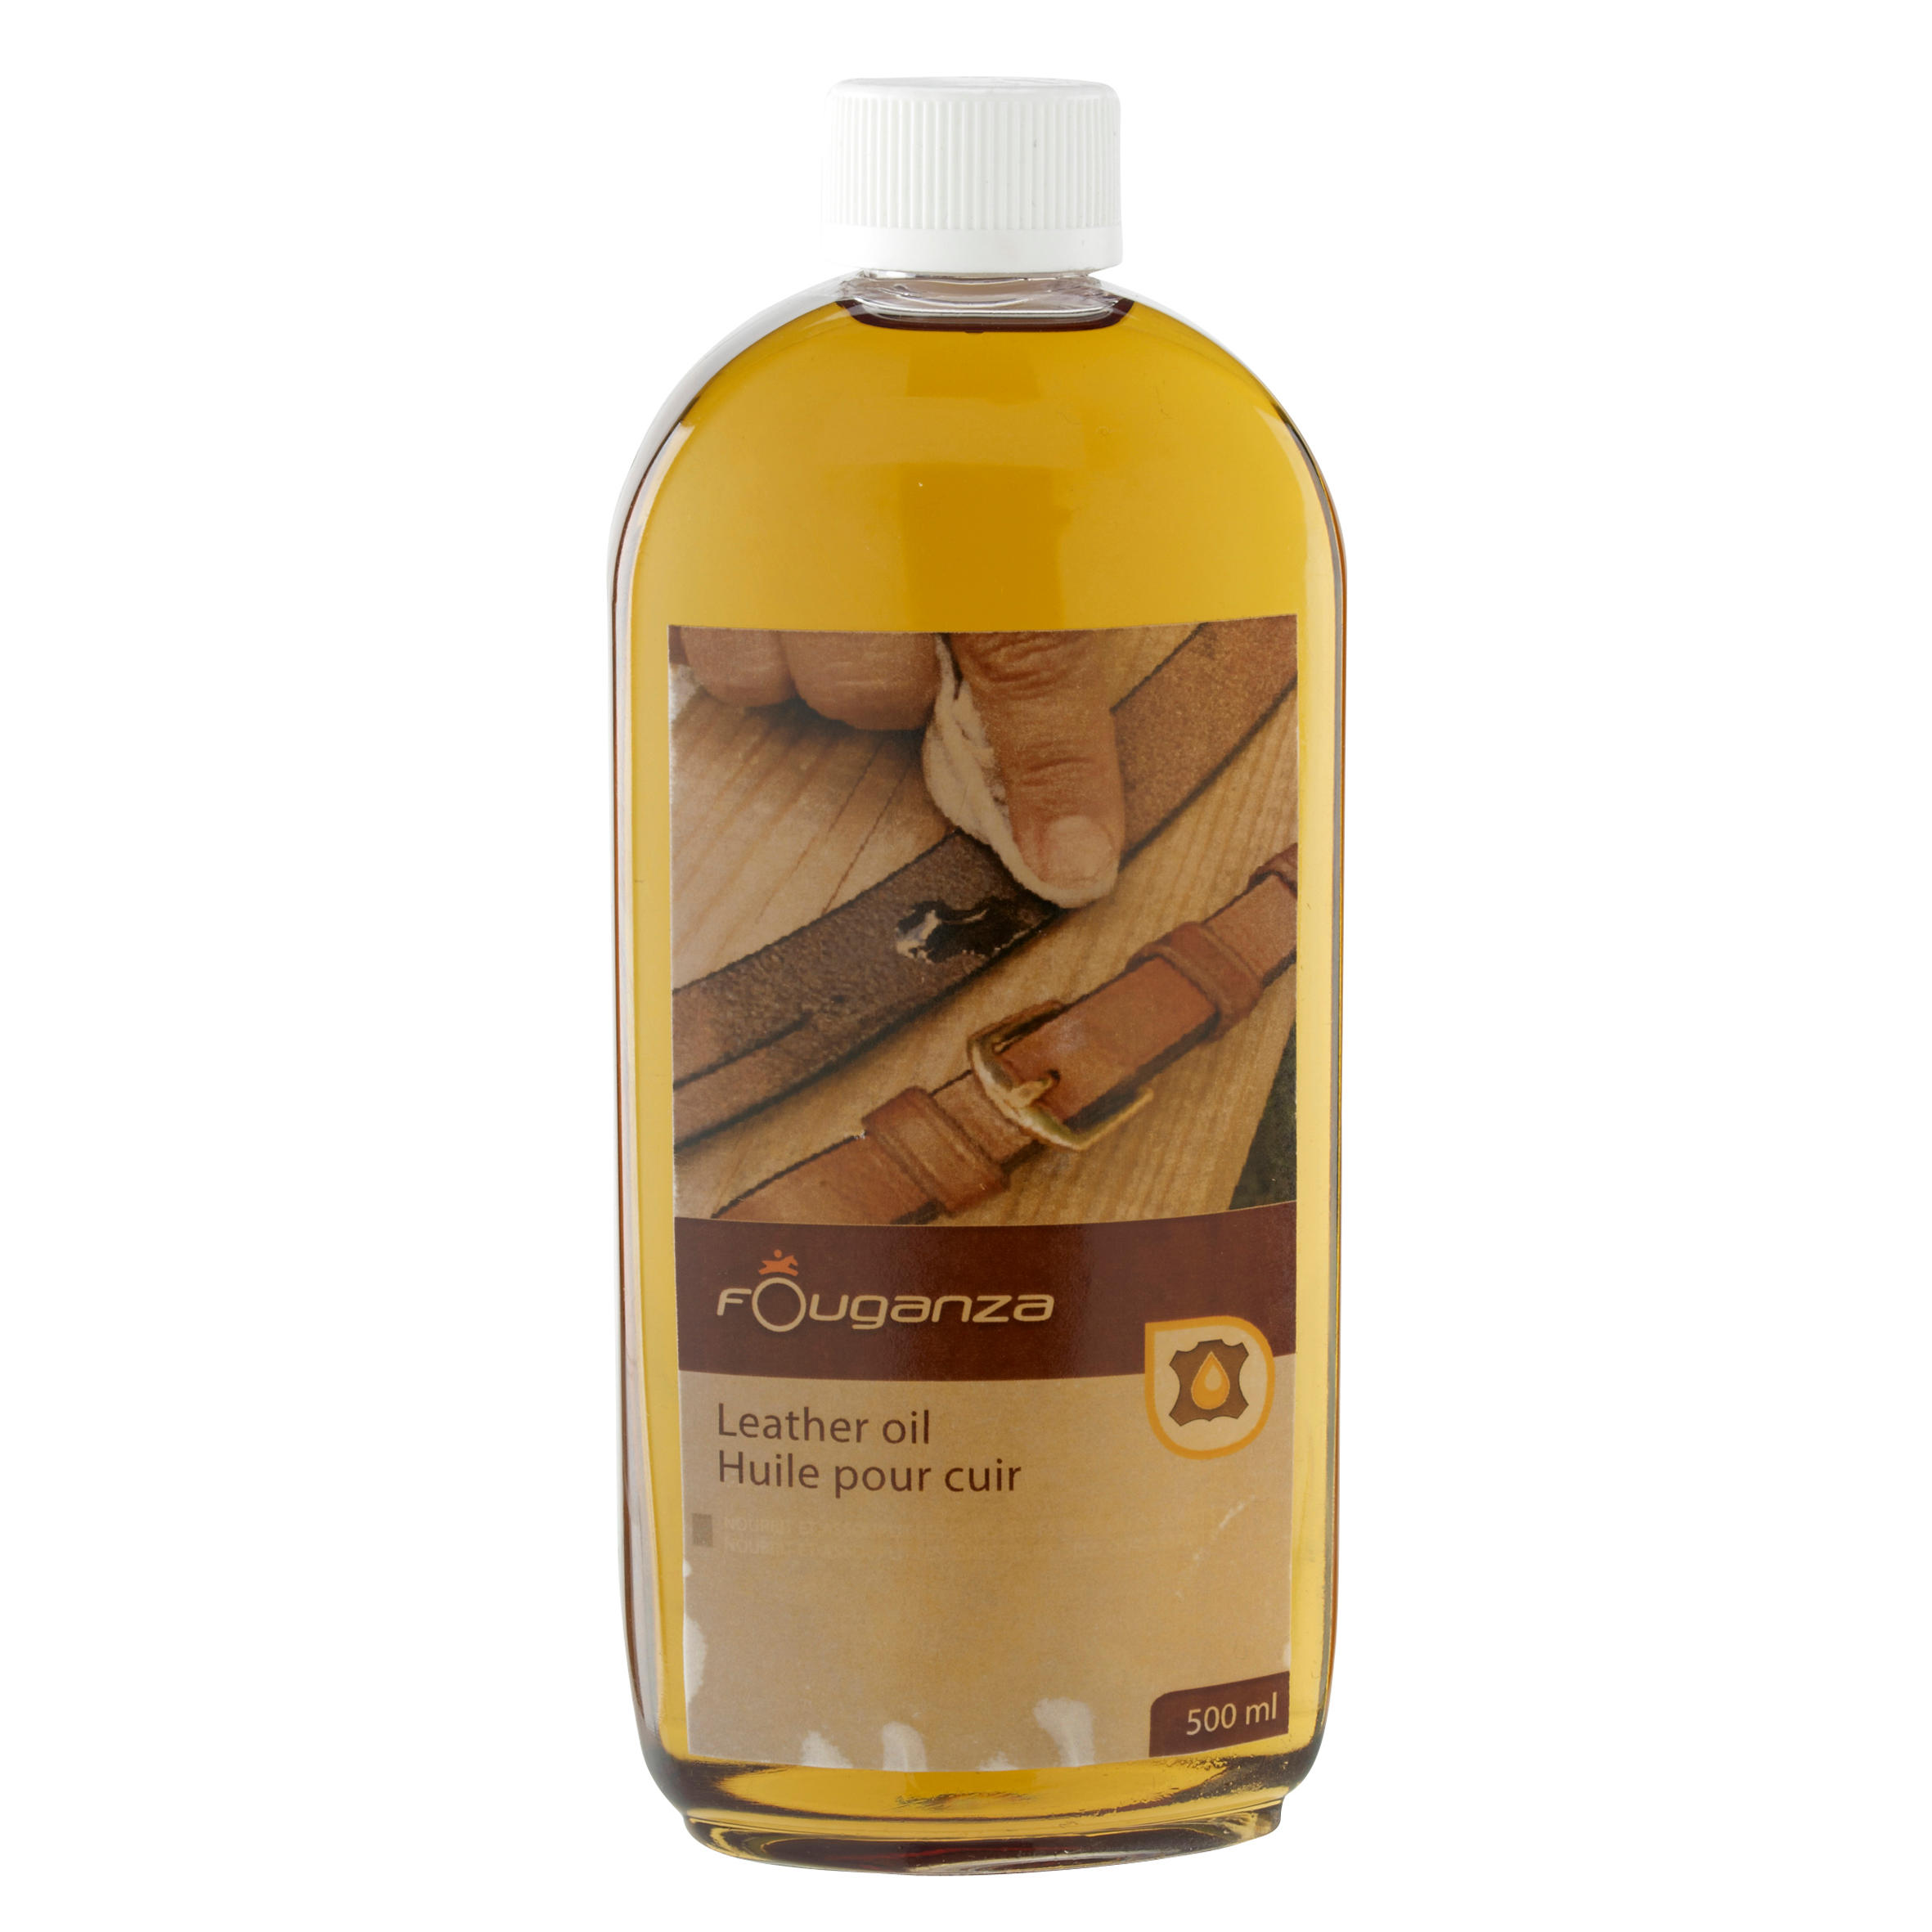 Horseback Riding Leather Oil 500 ml